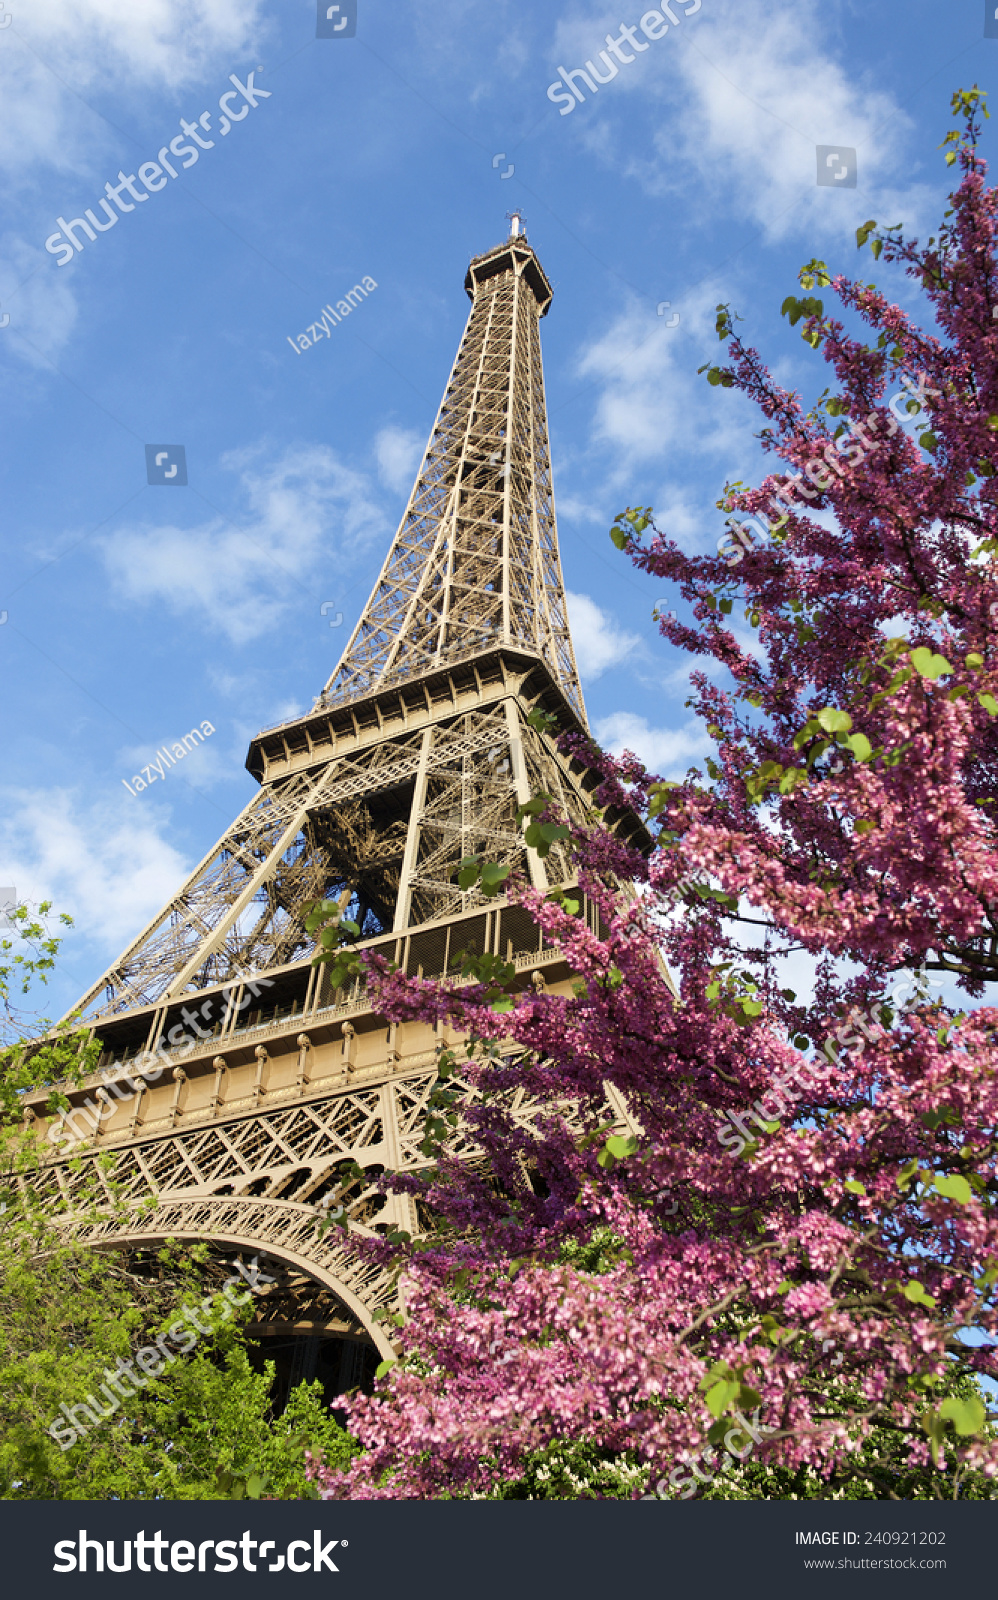 Paris spring flowering trees eiffel tower stock photo royalty free paris in the spring with flowering trees at the eiffel tower in blue sky izmirmasajfo